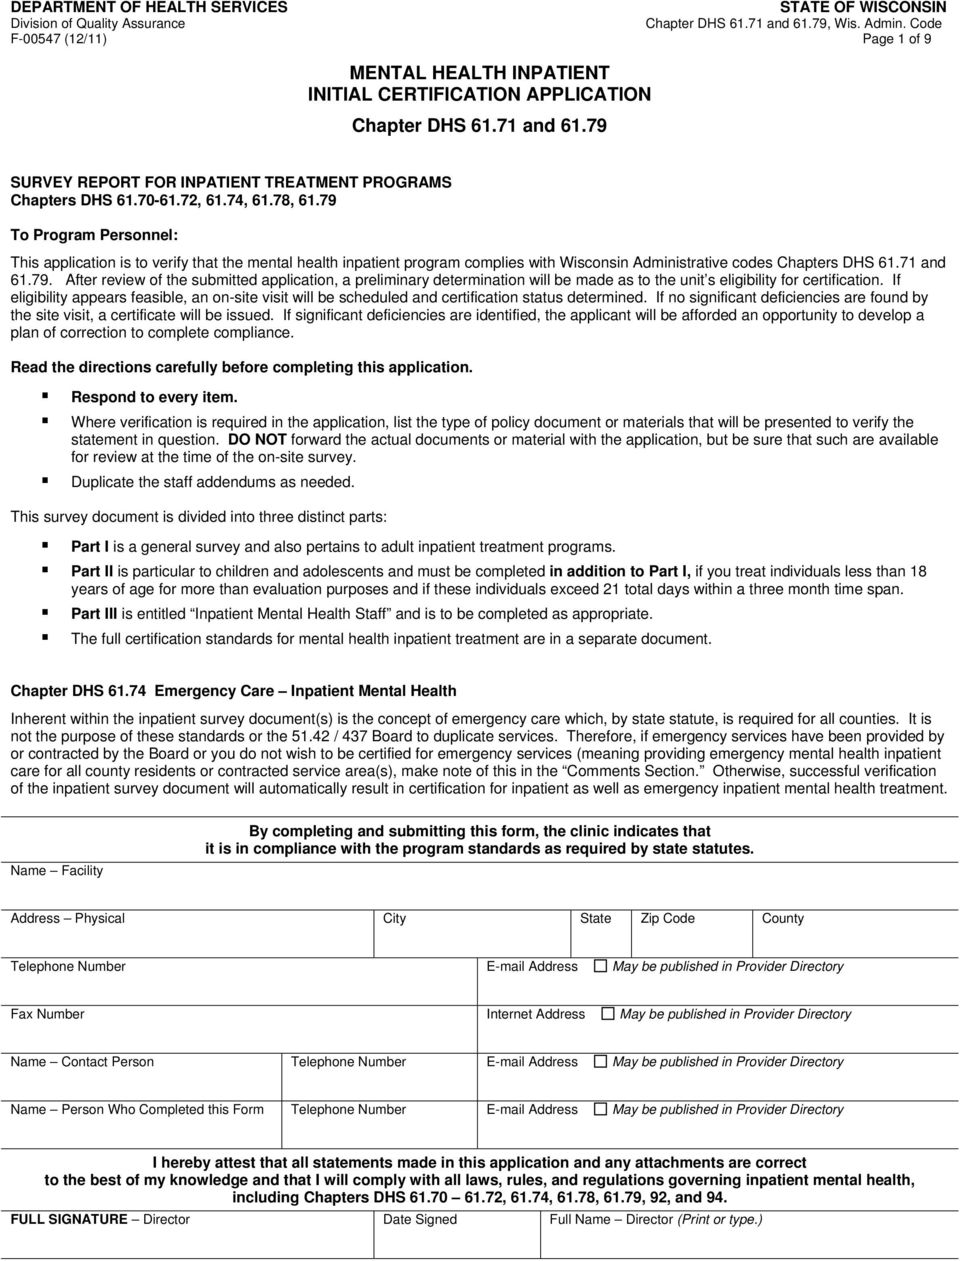 79 To Program Personnel: This application is to verify that the mental health inpatient program complies with Wisconsin Administrative codes Chapters DHS 61.71 and 61.79. After review of the submitted application, a preliminary determination will be made as to the unit s eligibility for certification.